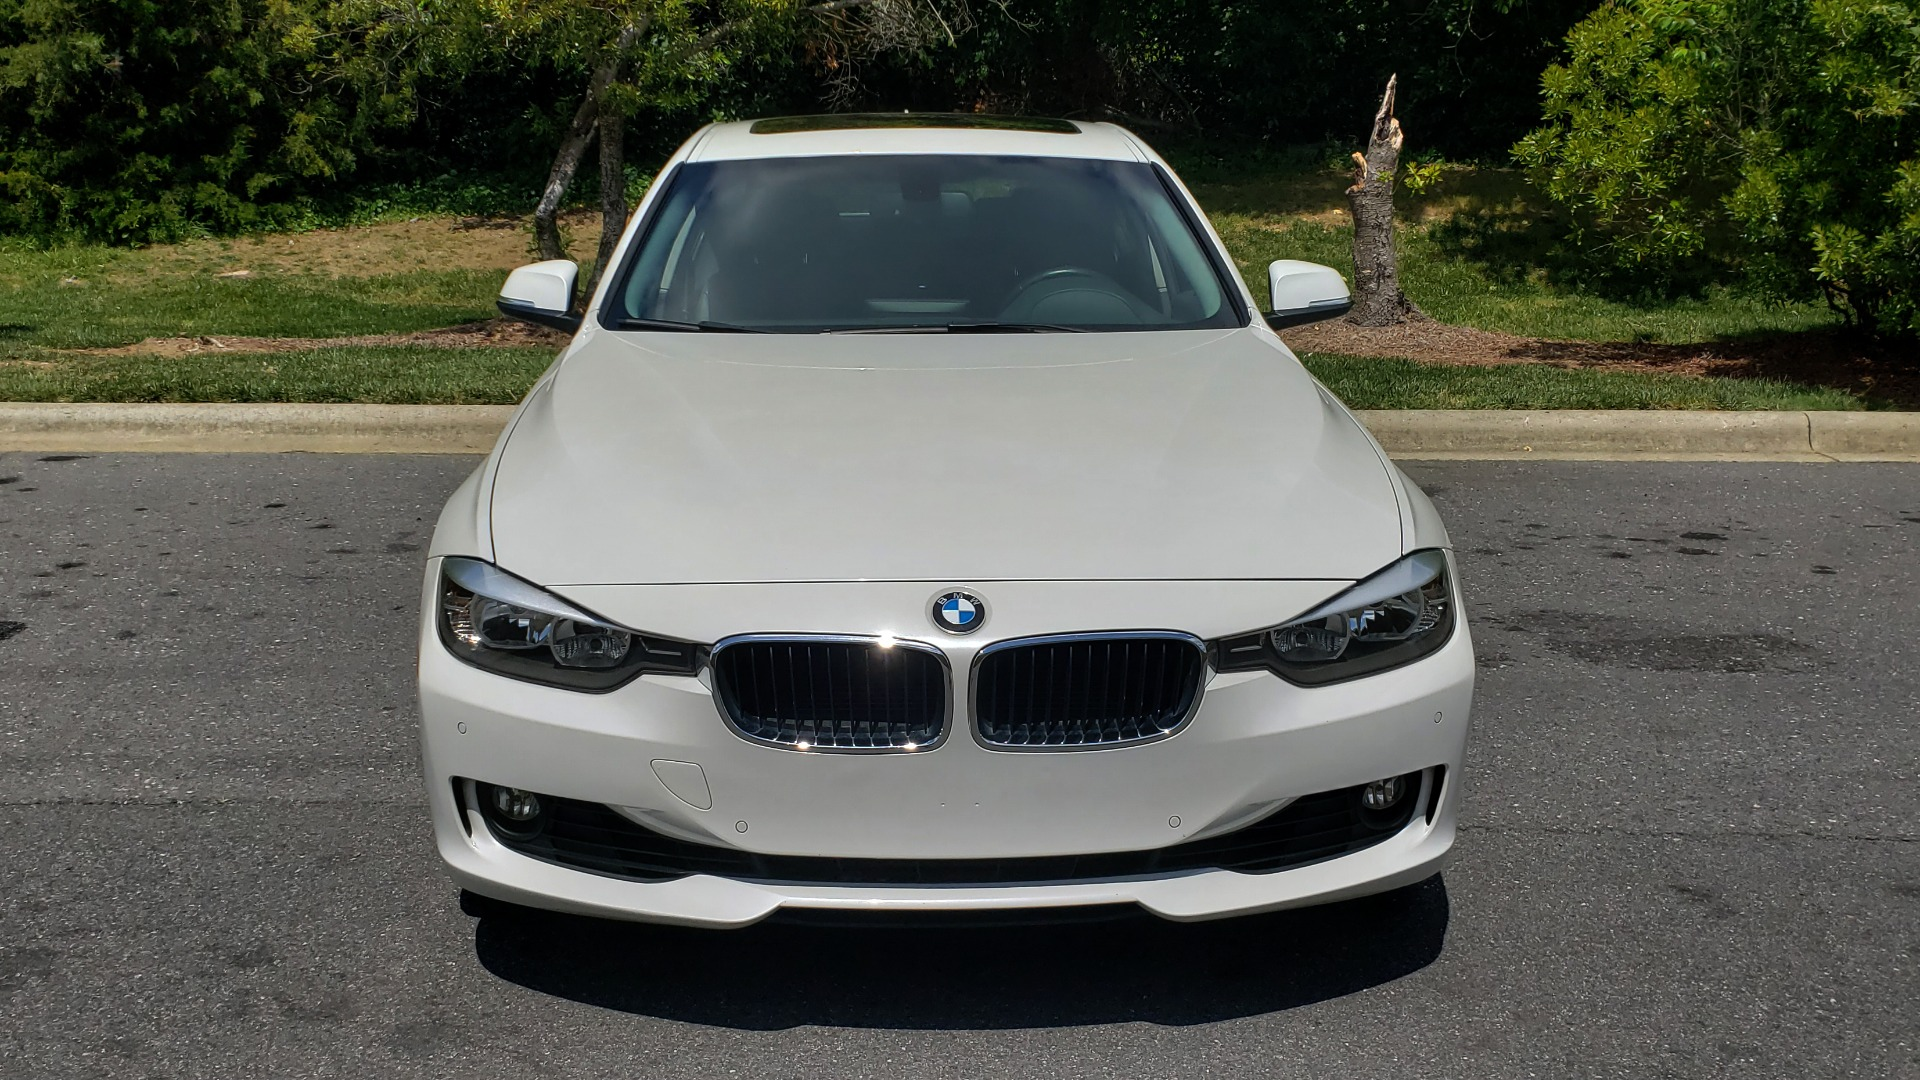 Used 2015 BMW 3 SERIES 328I PREMIUM / NAV / SUNROOF / HTD STS / DRIVER ASST / REARVIEW for sale Sold at Formula Imports in Charlotte NC 28227 18